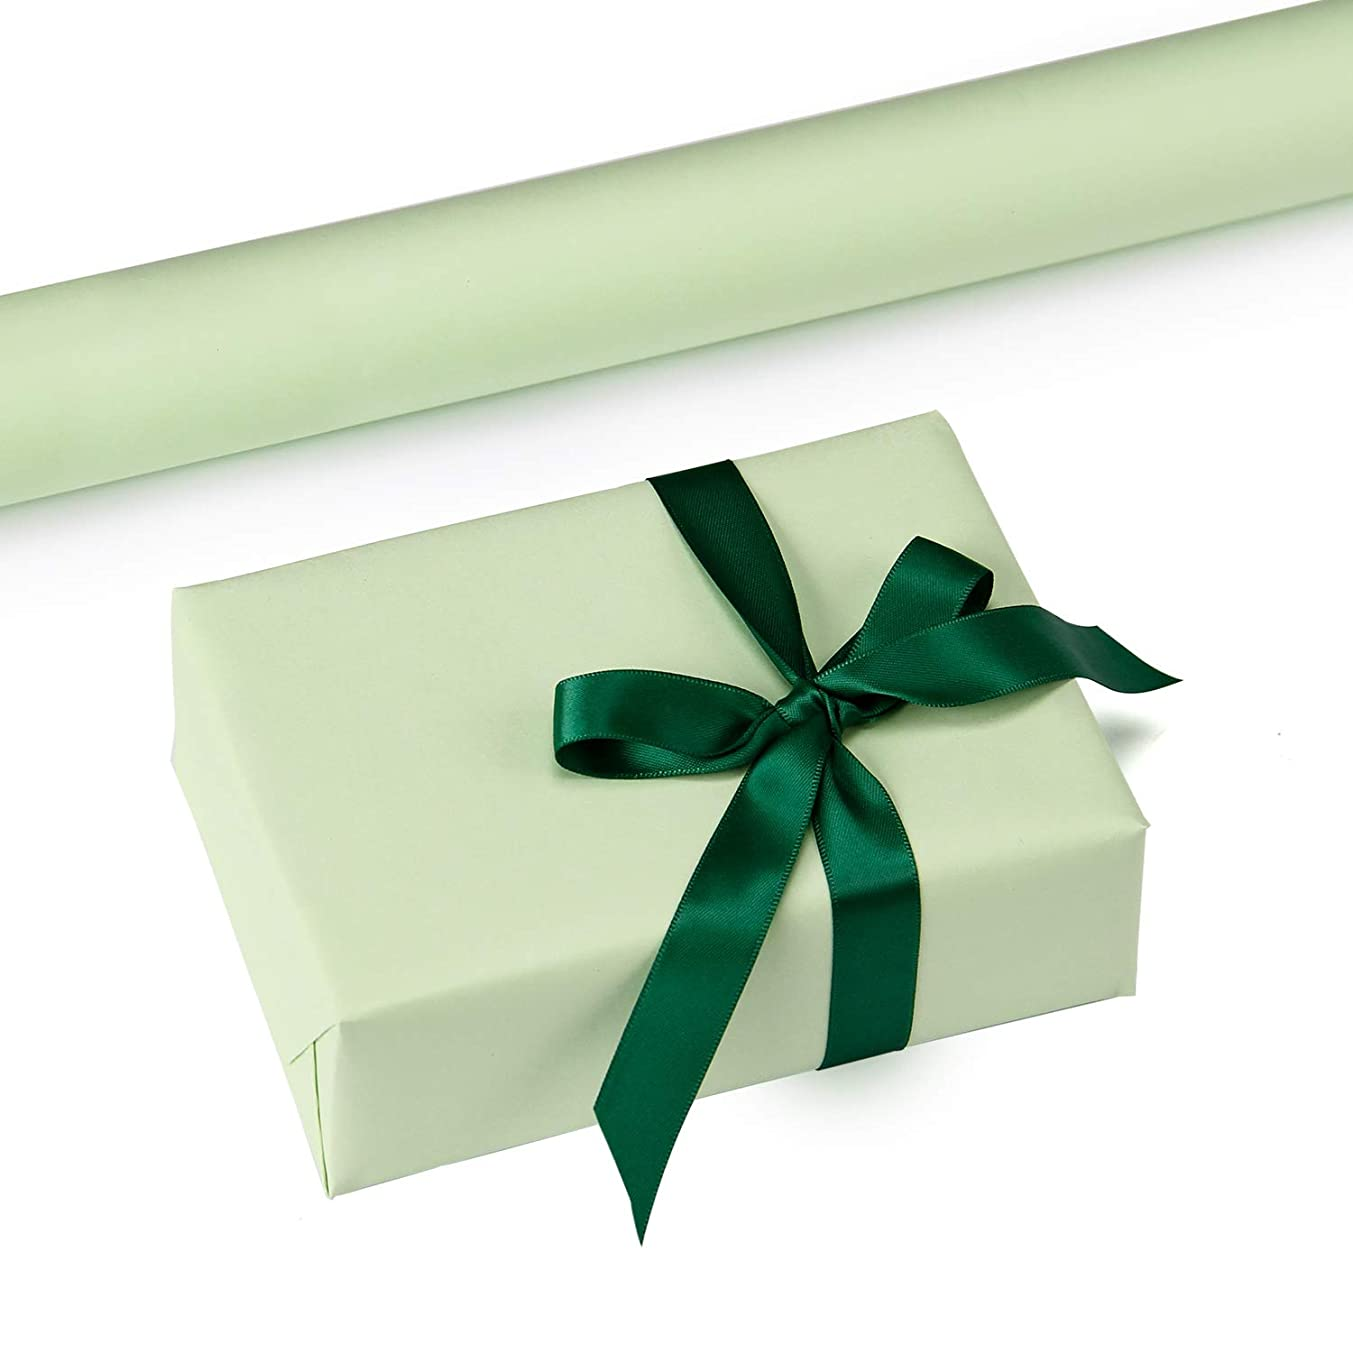 RUSPEPA Mint Kraft Wrapping Paper - 47.8 Sq Ft Heavyweight Paper for Wedding,Birthday, Shower, Congrats, and Holiday Gifts - 17.5Inch X 32.8Feet Per Roll